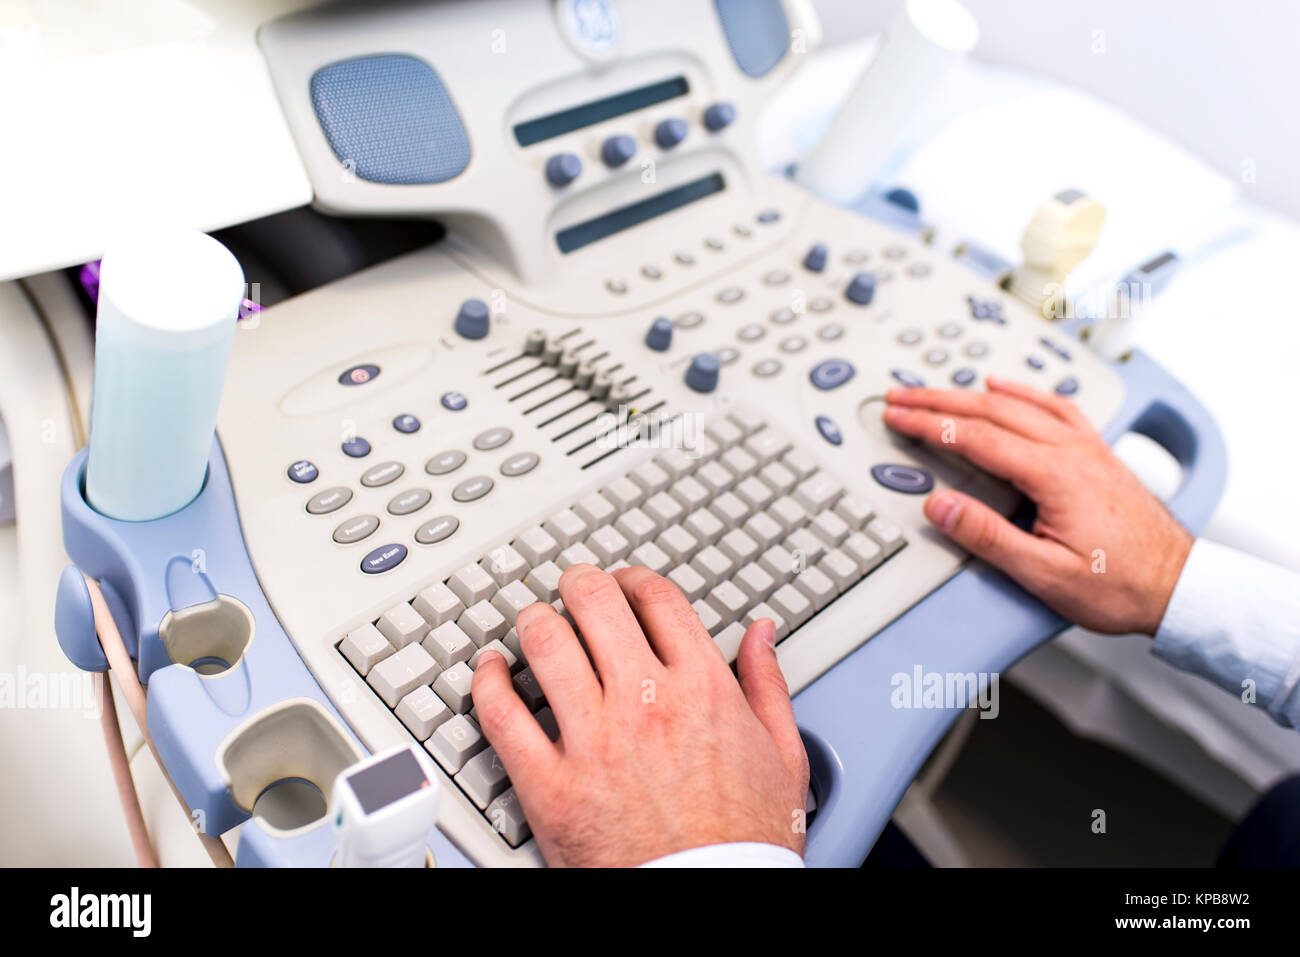 Close up view at doctors hands working on ultrasounds keyboard - Stock Image